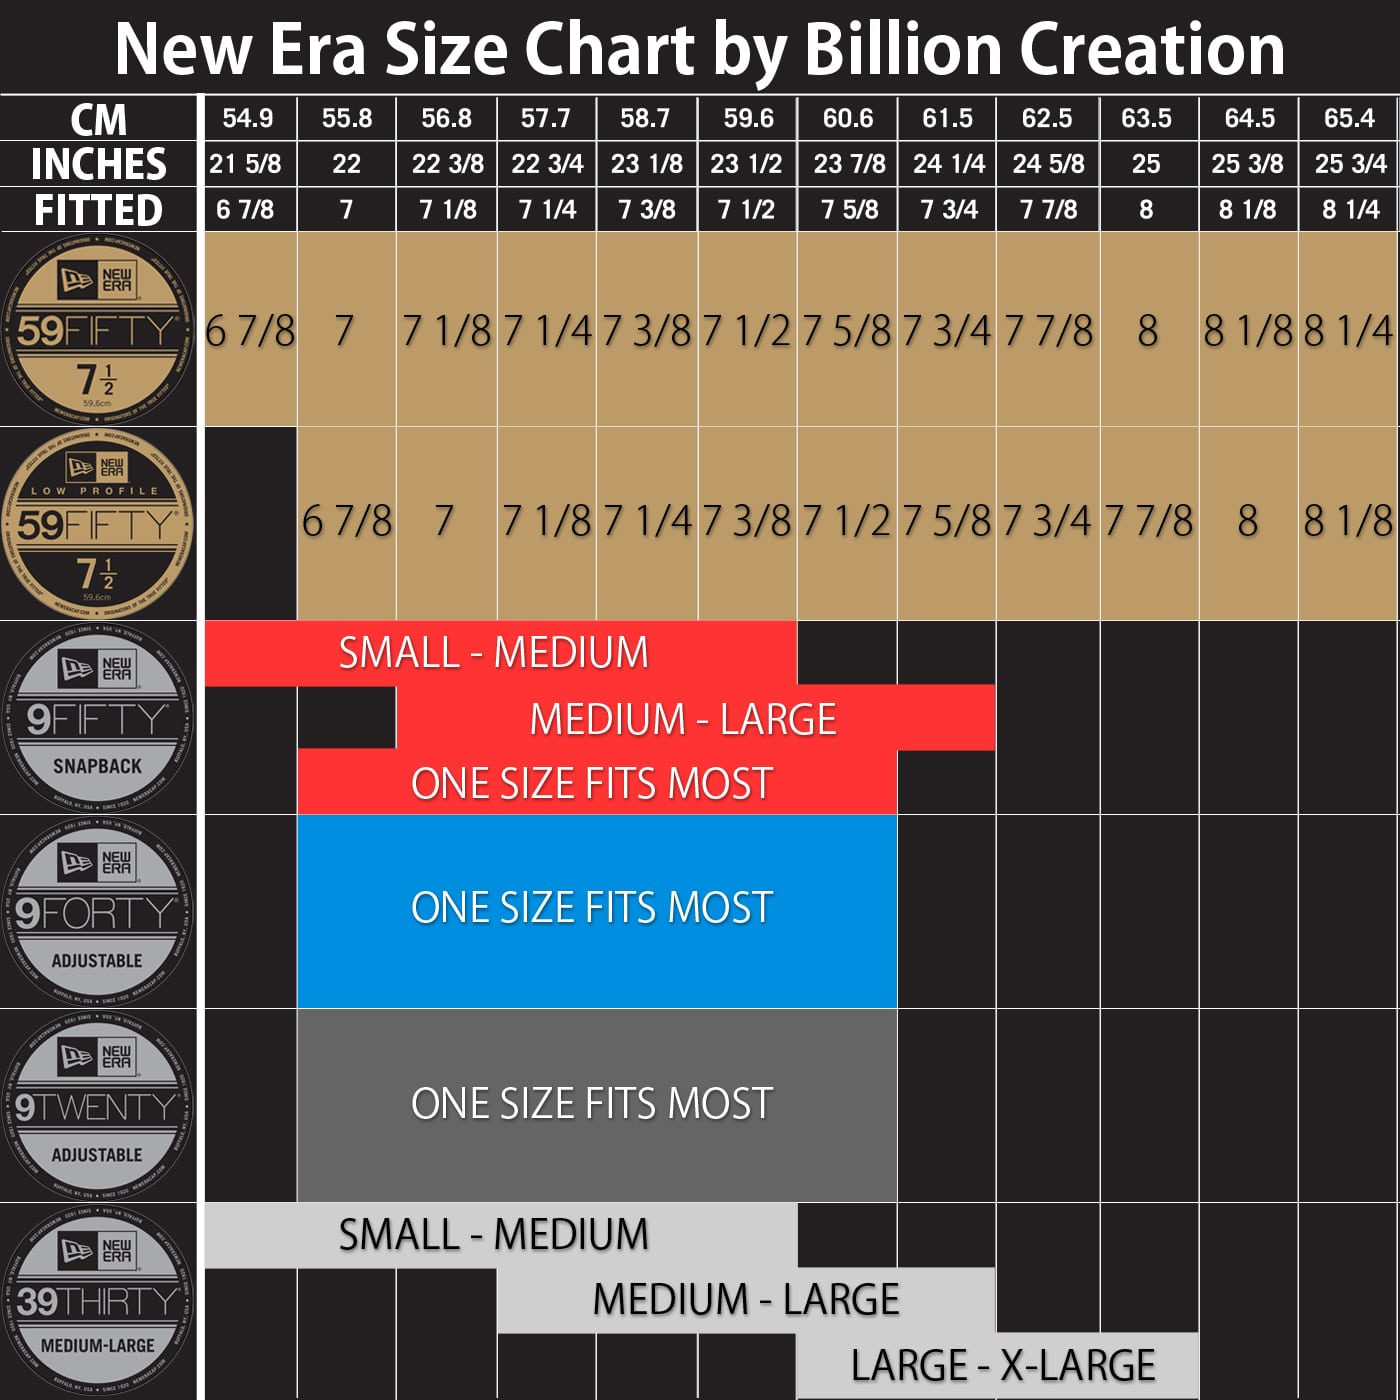 4b41c0dc37ebb New Era Hat Sizes - The Ultimate New Era Cap Size Guide